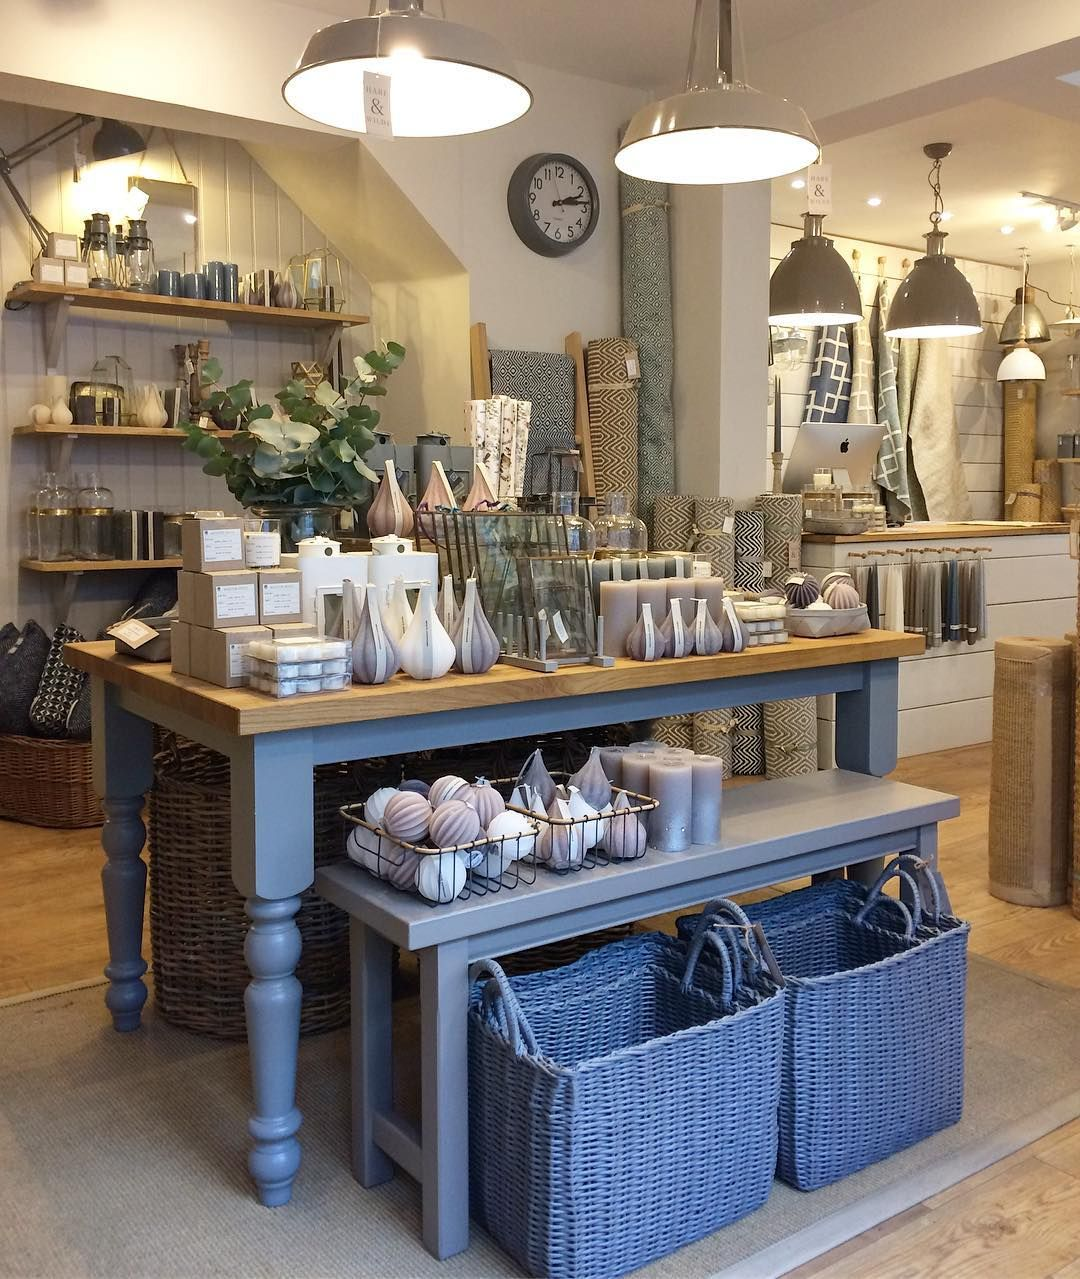 Pop into our Malton Store to see what new stock has